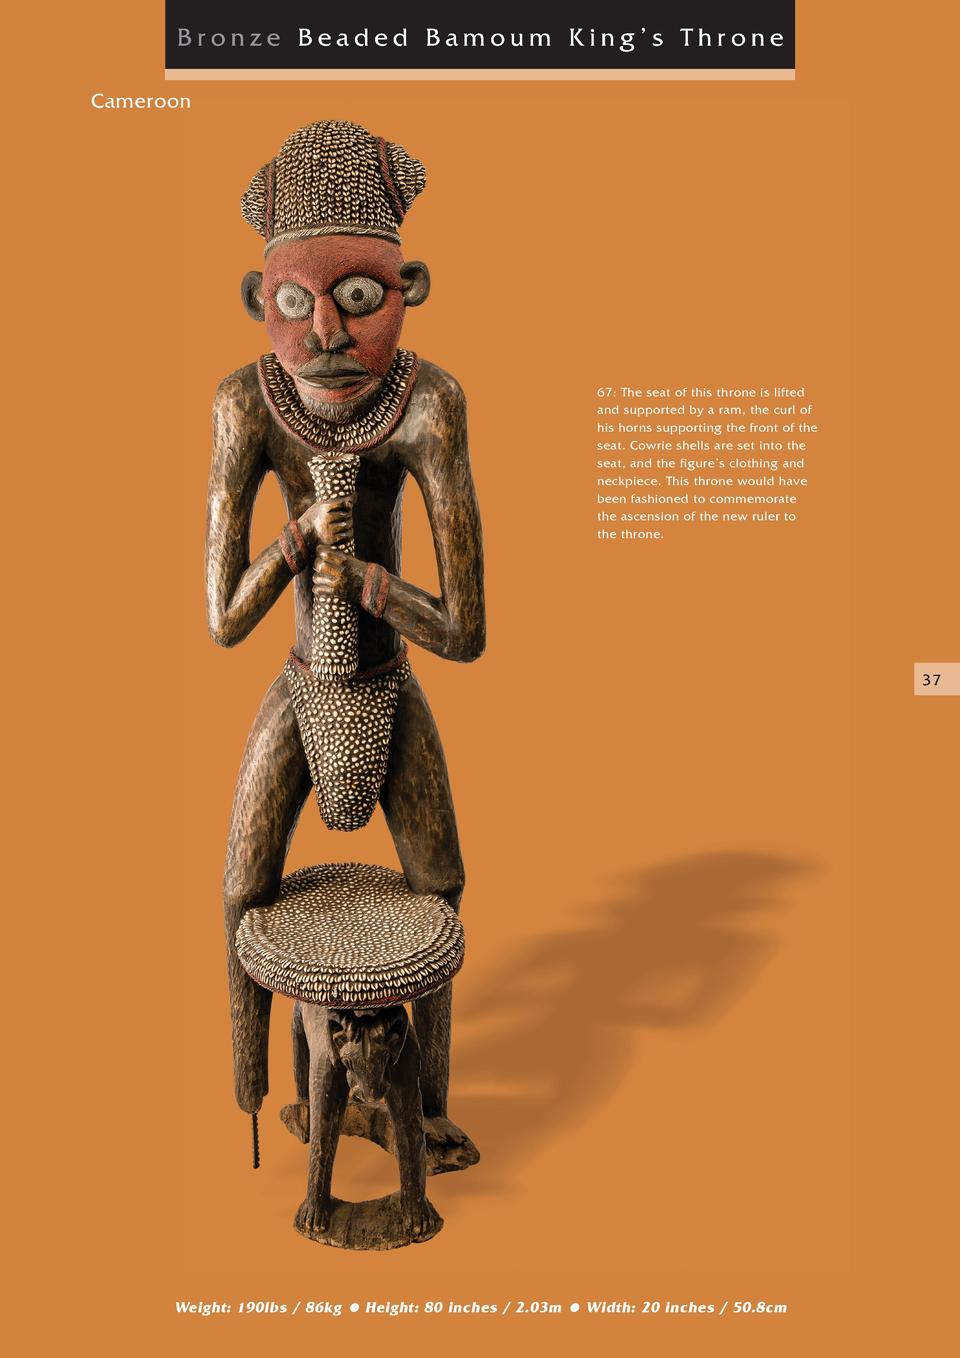 Bronze Beaded Bamoum King   s Throne Cameroon  67  The seat of this throne is lifted and supported by a ram, the curl of h...